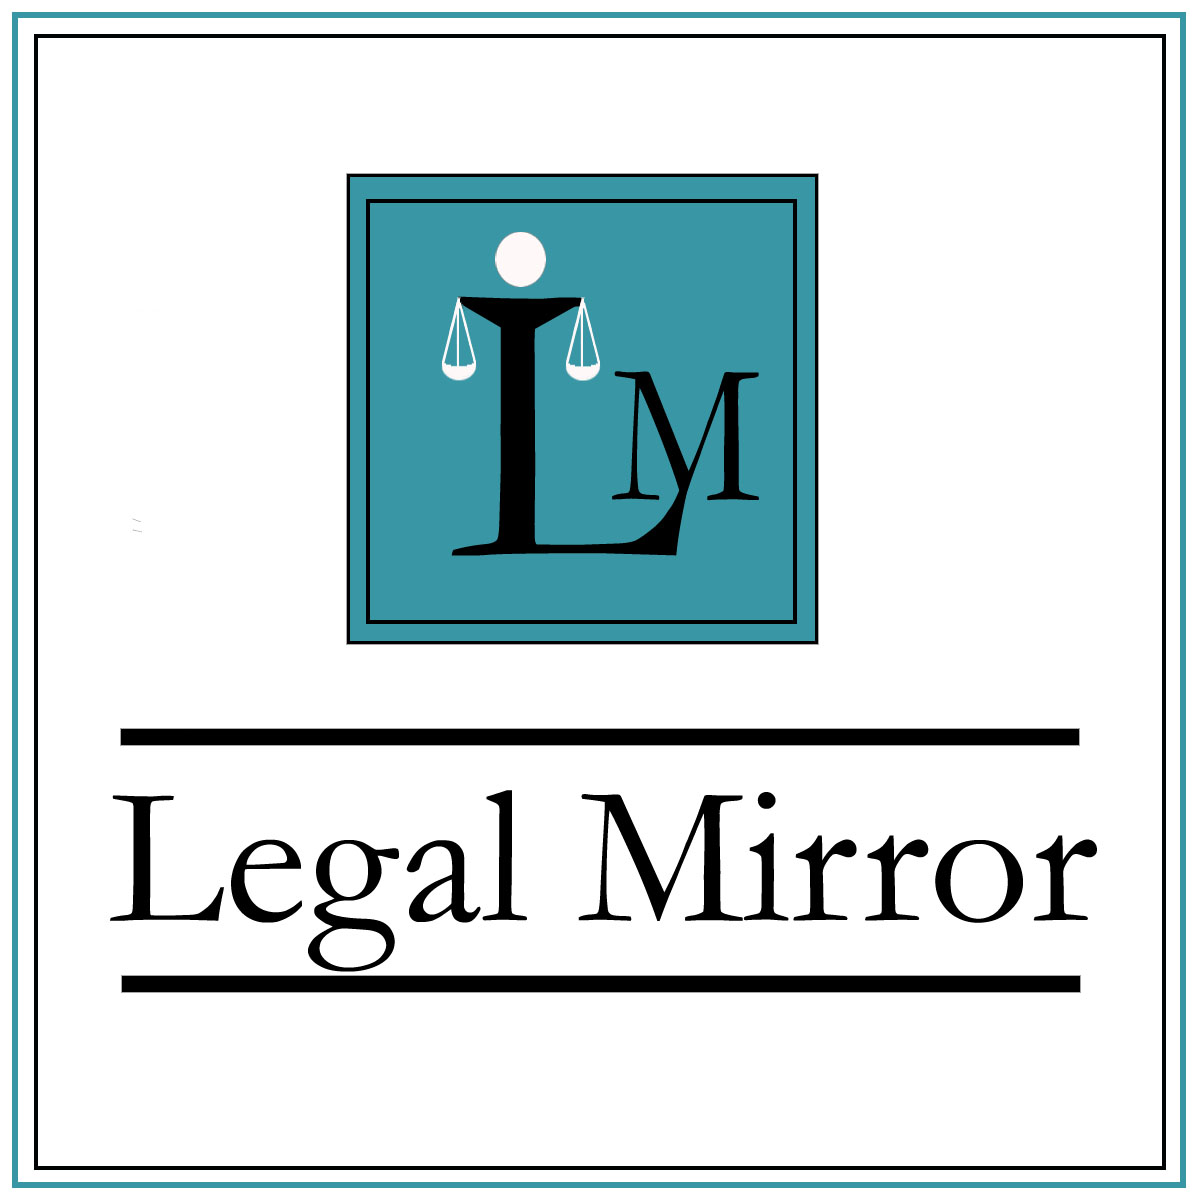 Call for Papers: Legal Mirror, Volume 1, Issue 4